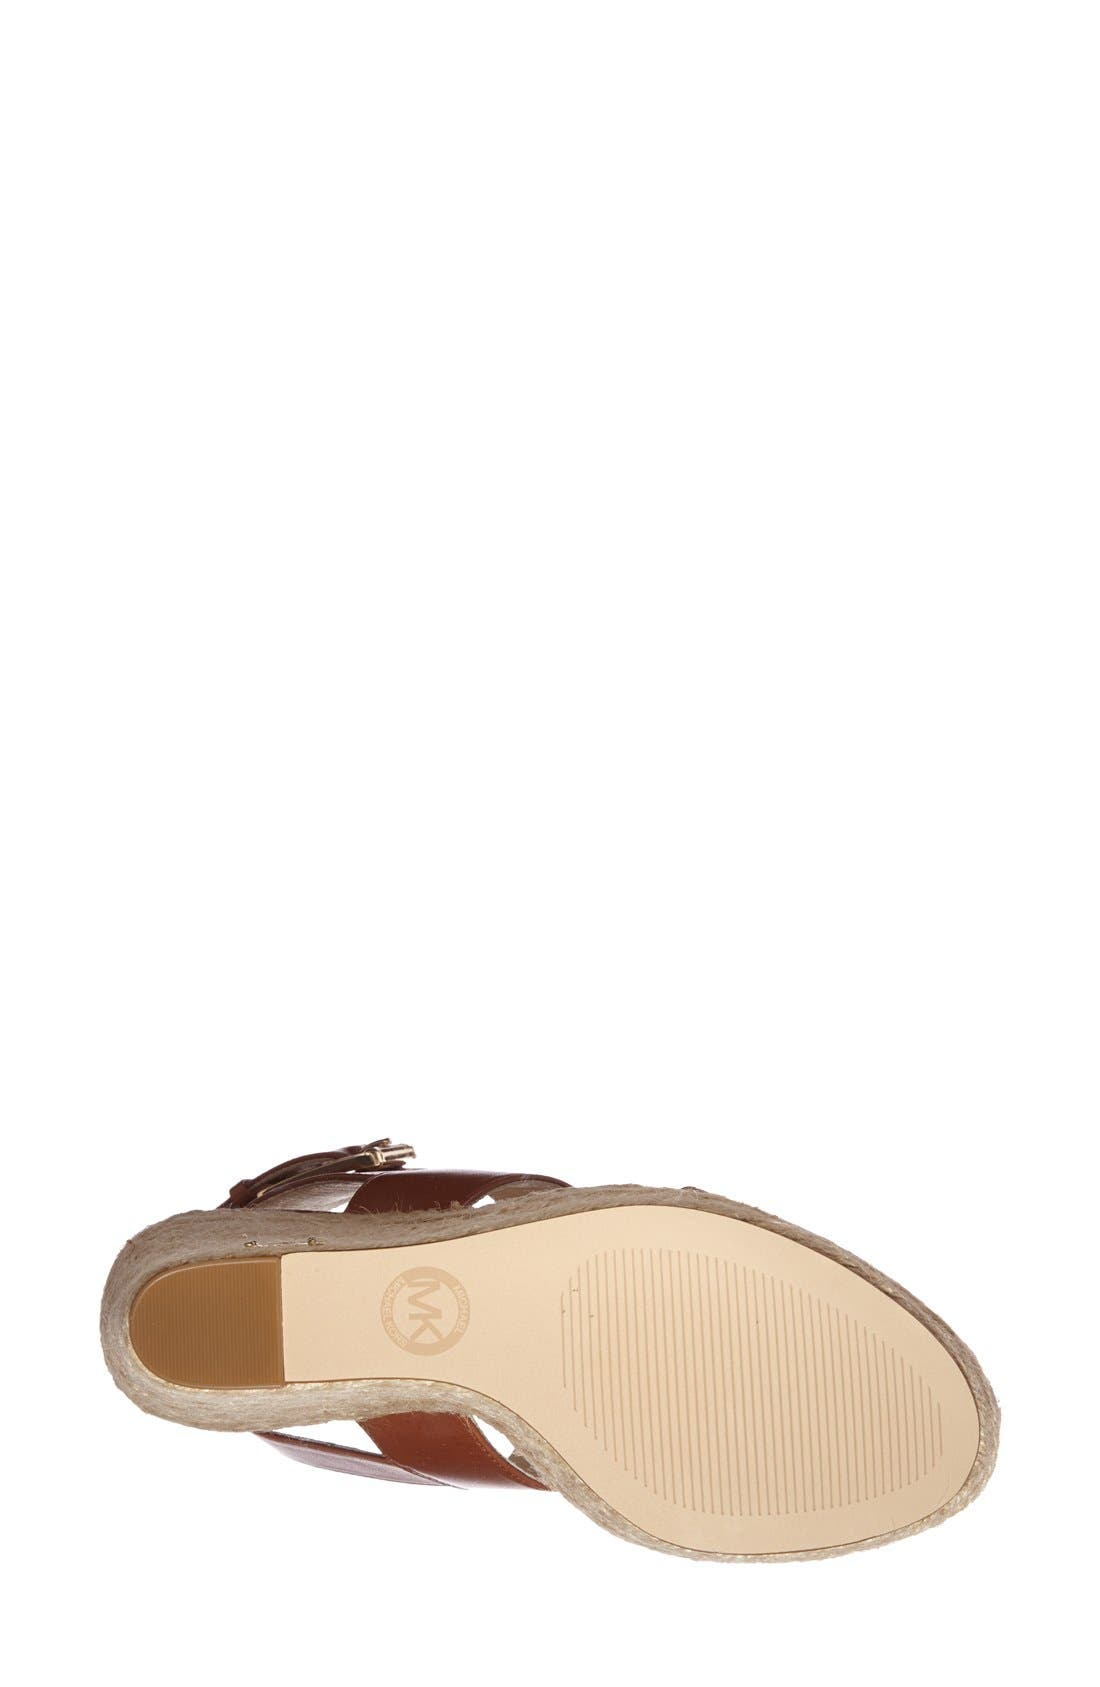 Alternate Image 4  - MICHAEL Michael Kors 'Posey' Ankle Strap Espadrille Wedge Sandal (Women)